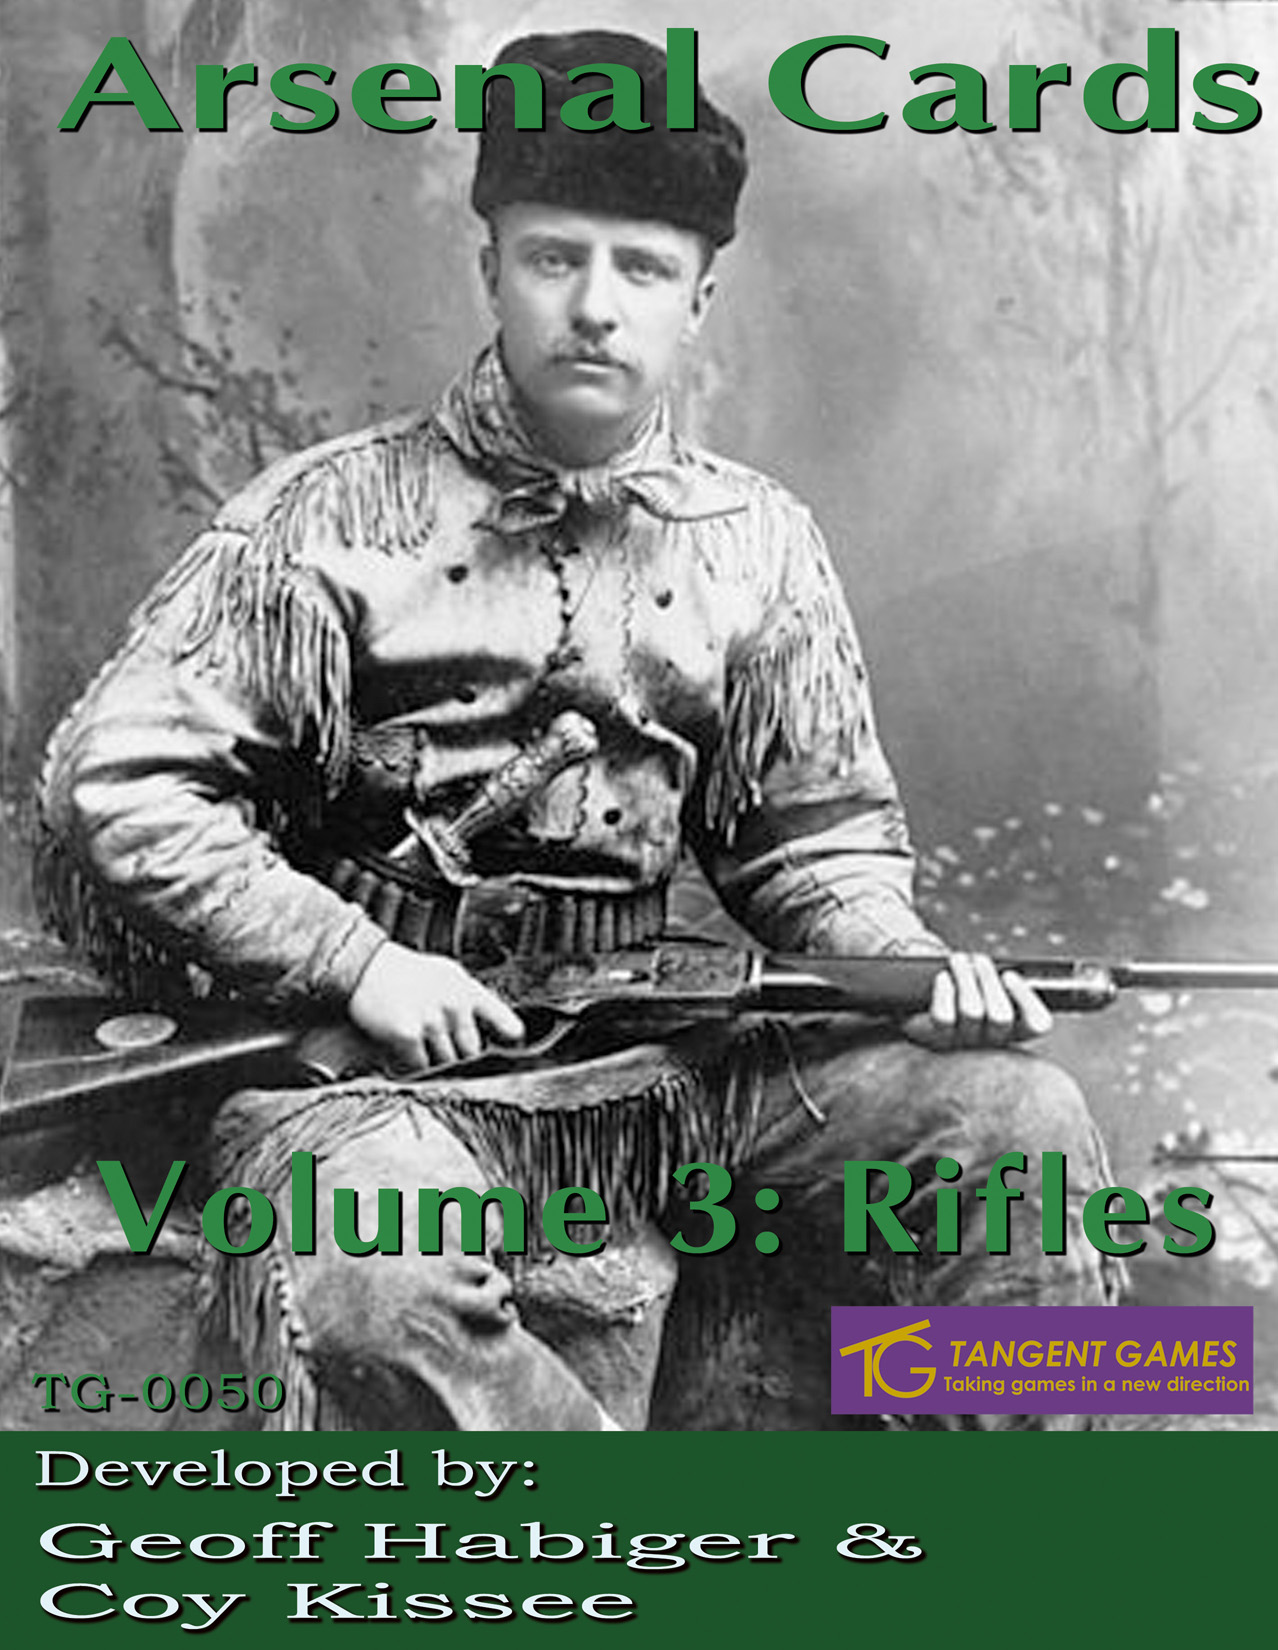 Arsenal Cards: Volume 3: Rifles